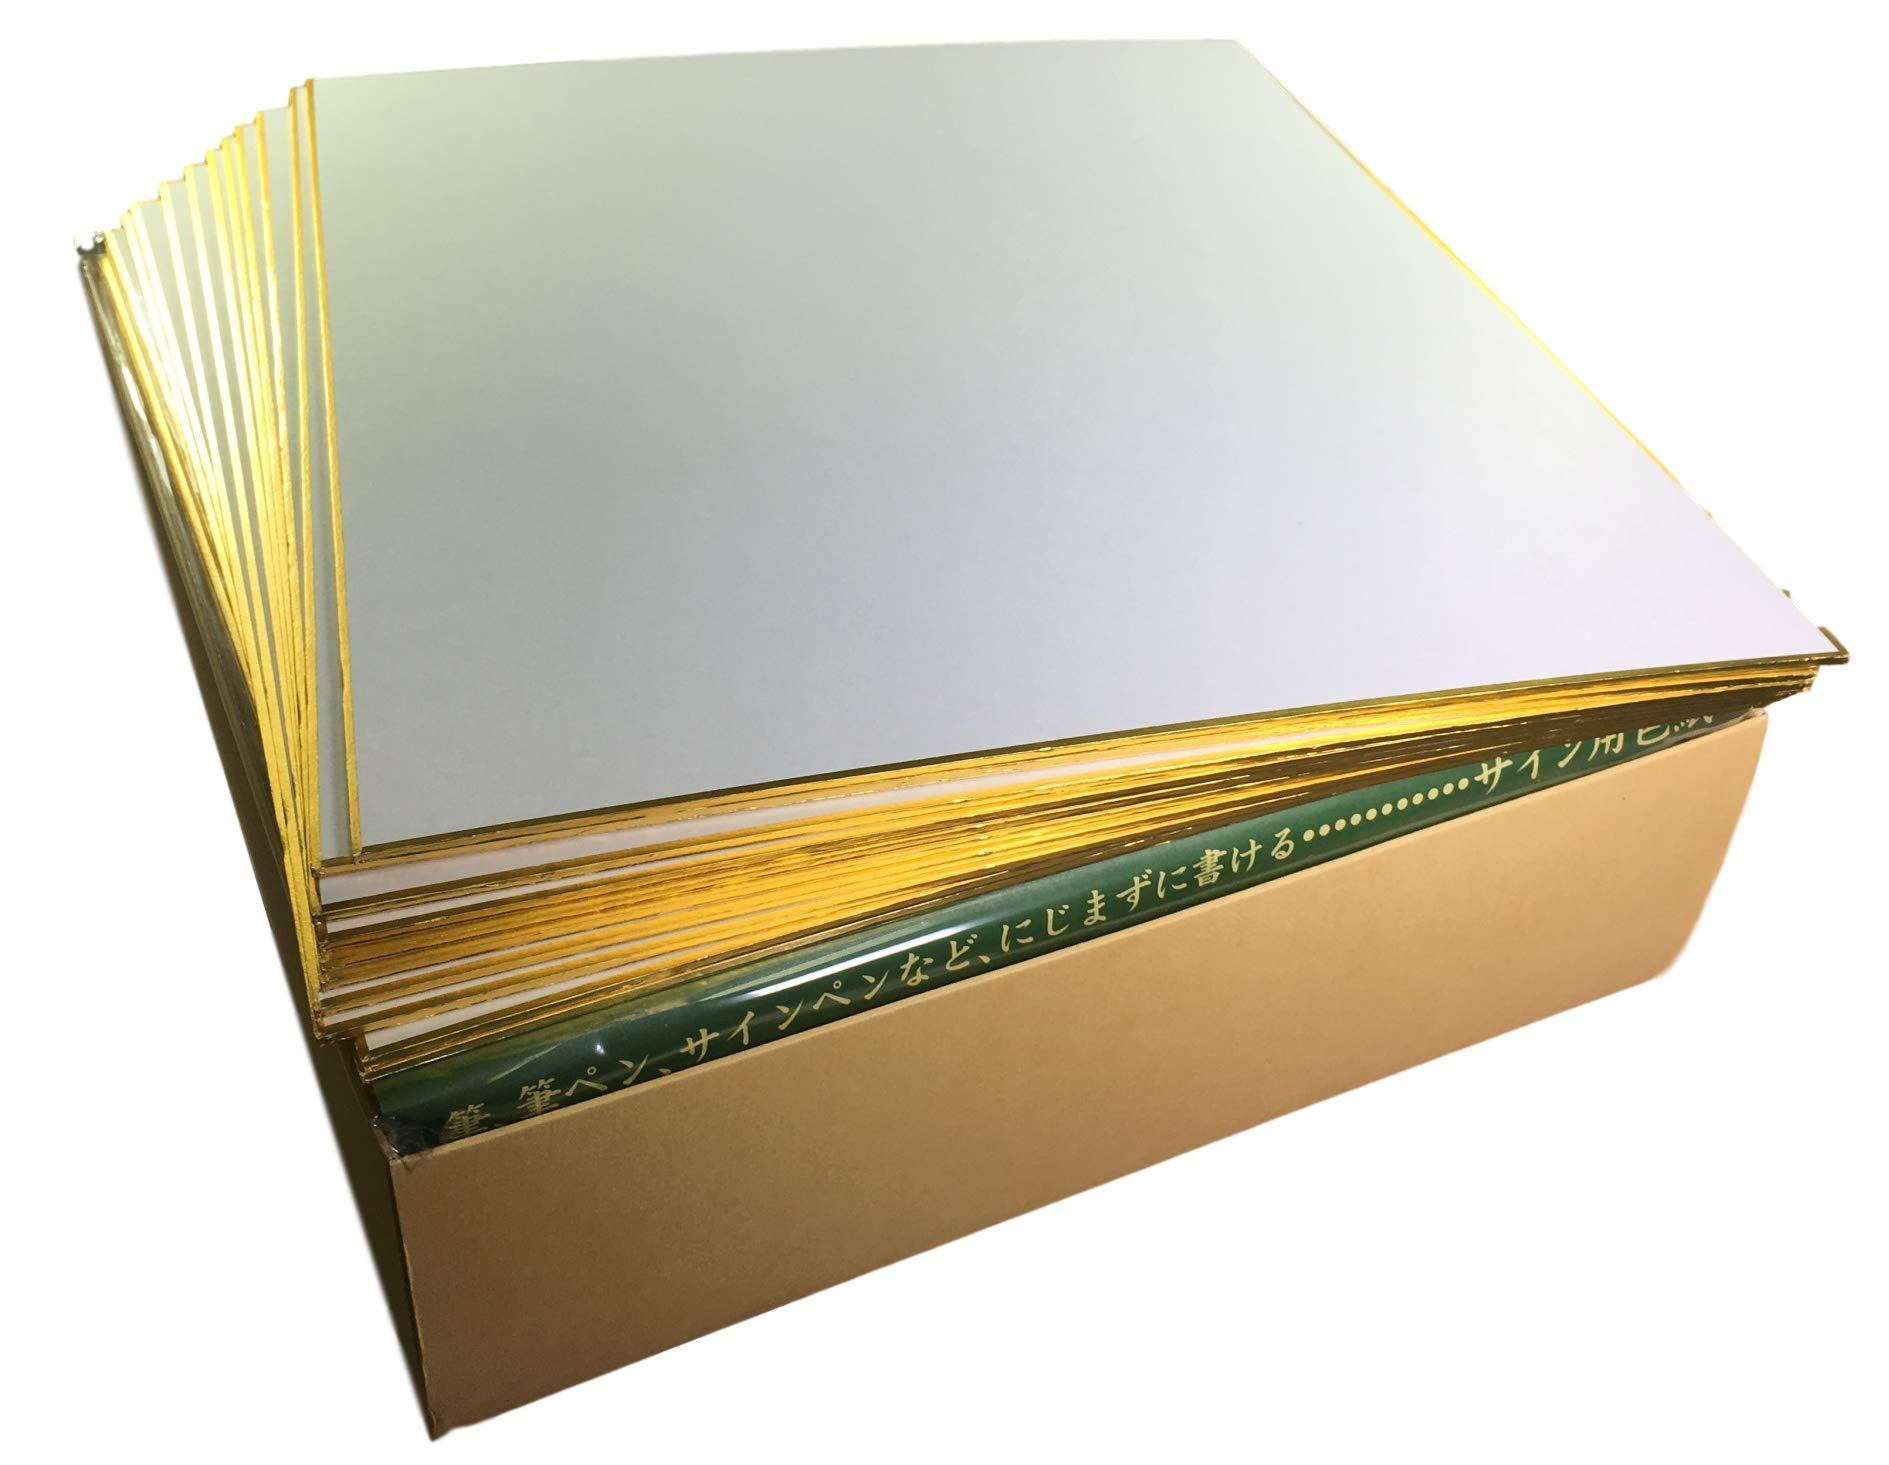 Japanese Shikishi White Board 9.5 x 10.75 inches Gold Bordered for Japanese Art or Calligraphy Total 50 pcs Box Set